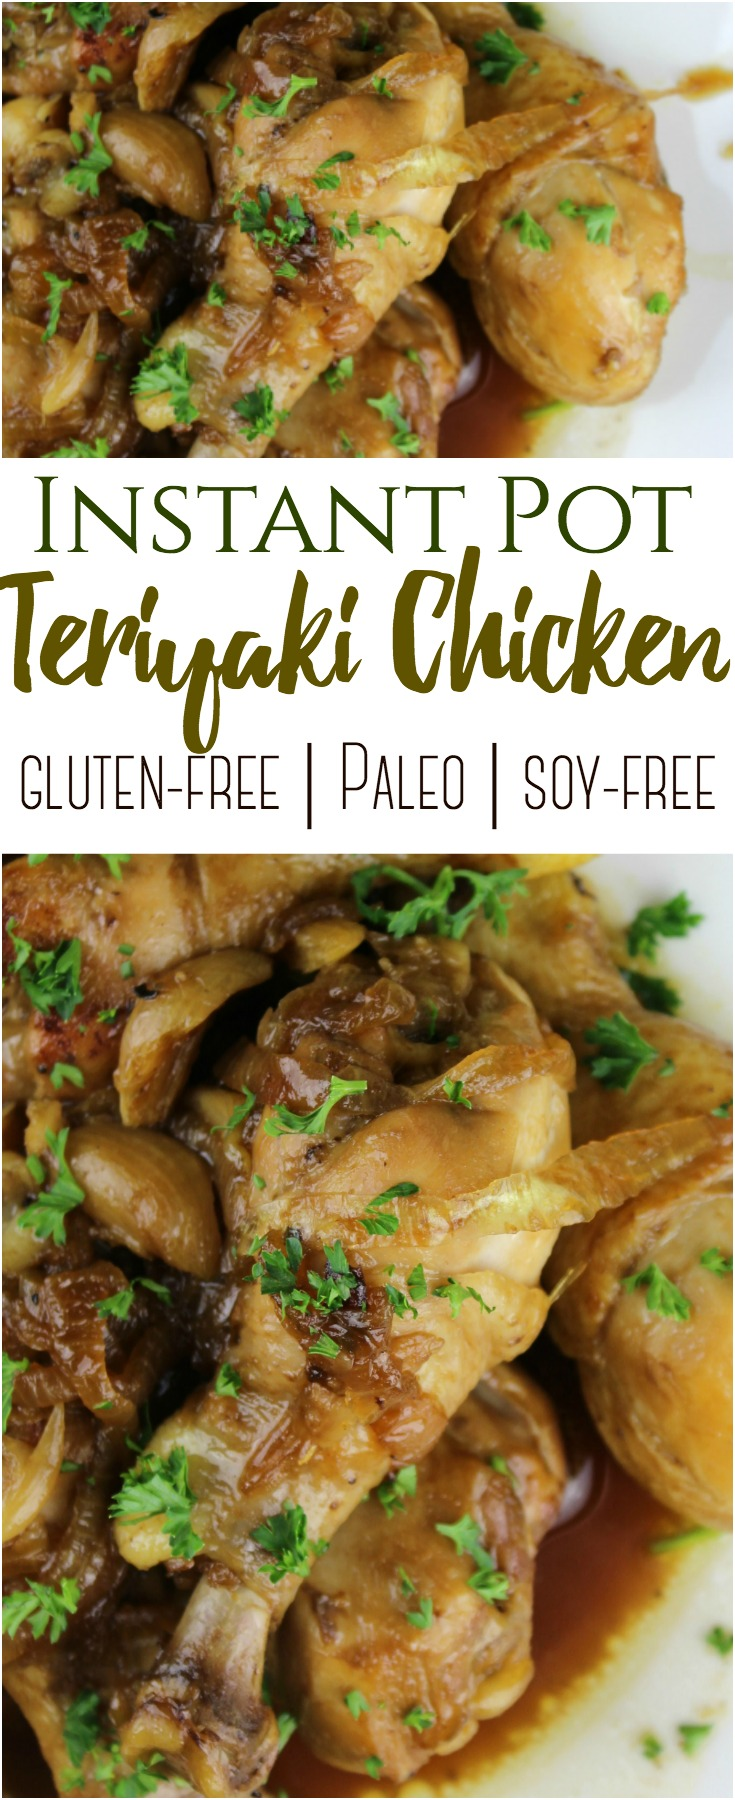 Instant Pot Teriyaki Chicken (Paleo-friendly, gluten-free and soy-free)